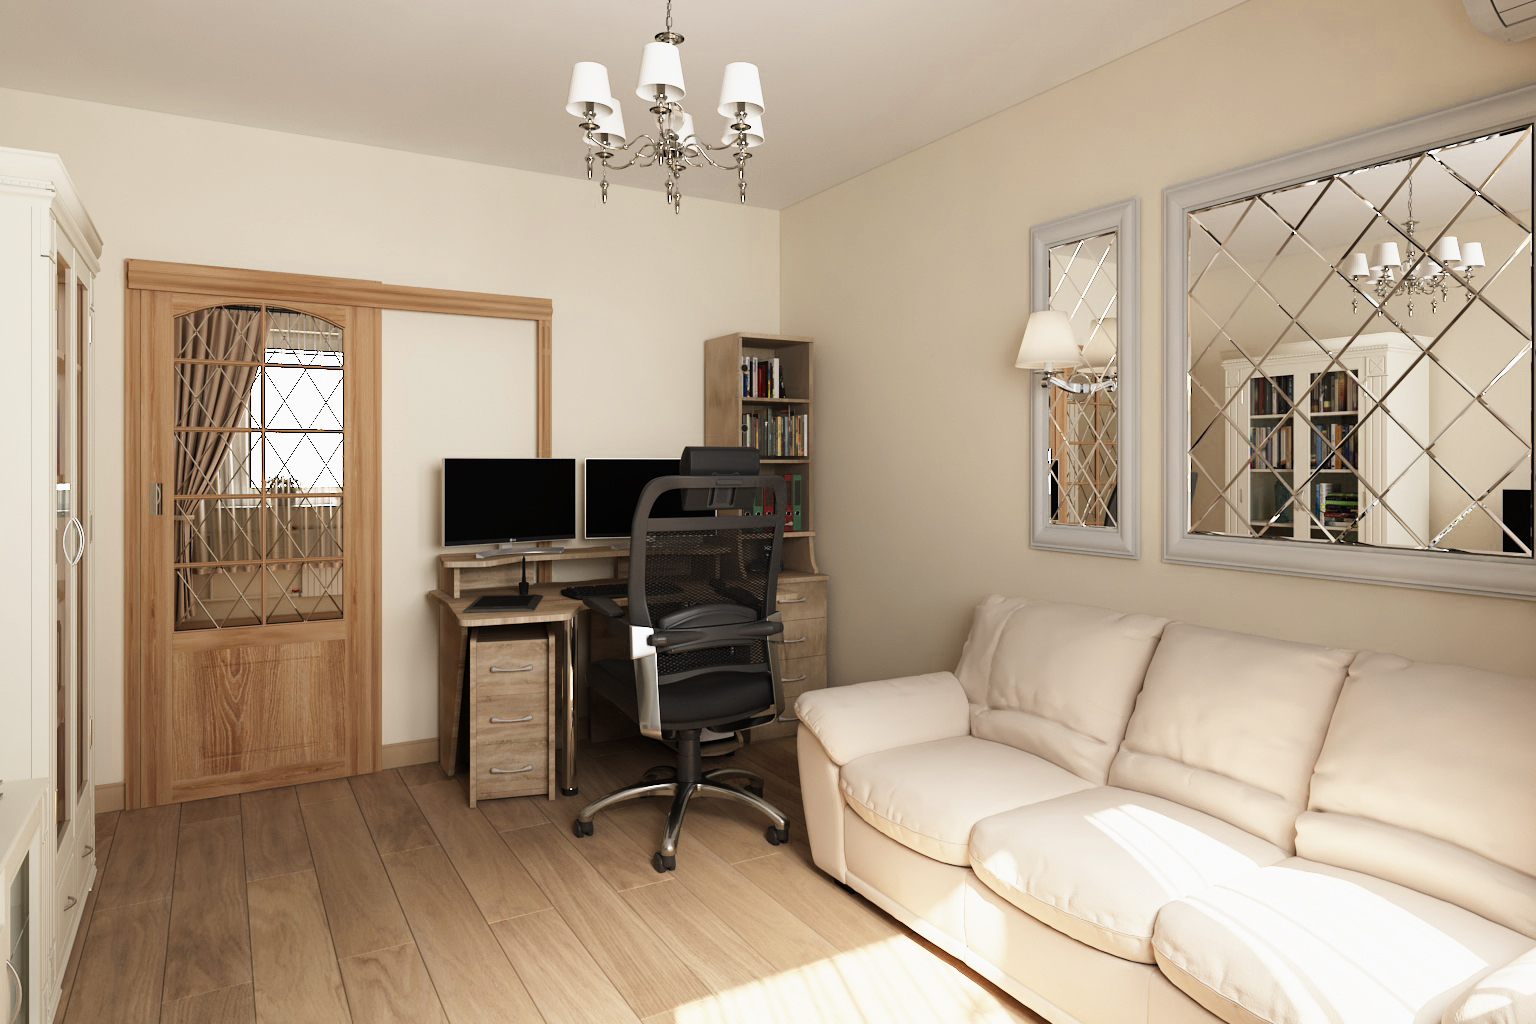 Living room with workplace in 3d max vray 3.0 image